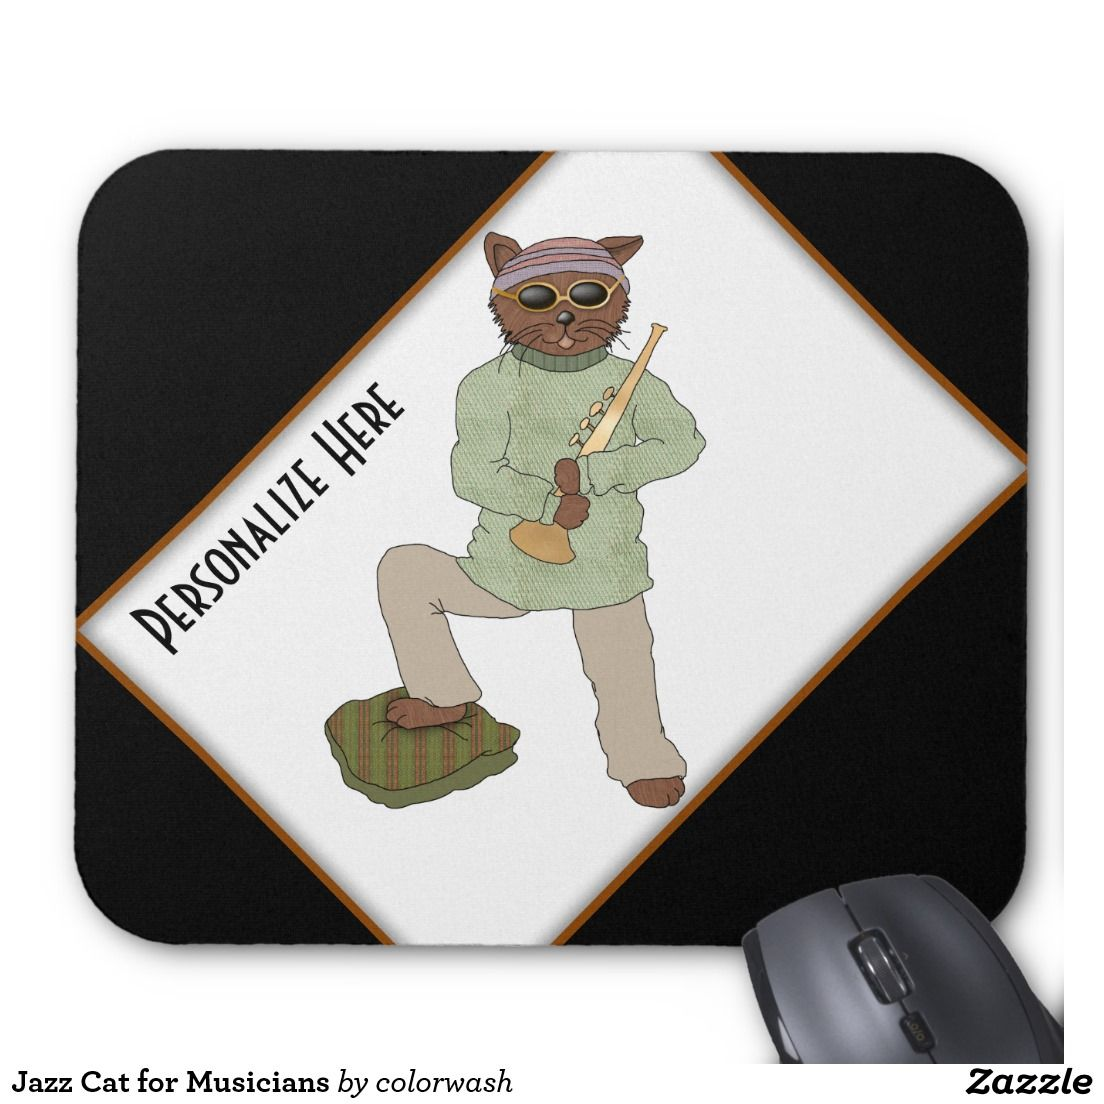 Gray Musicians Mouse Pad One Very Kitty To Match Upwith One Very Make It A Catpad Instead Musicians Mouse Pad Jazz Mice A Jazz Cat Mousepad Jazz Cat custom Cool Mouse Pads